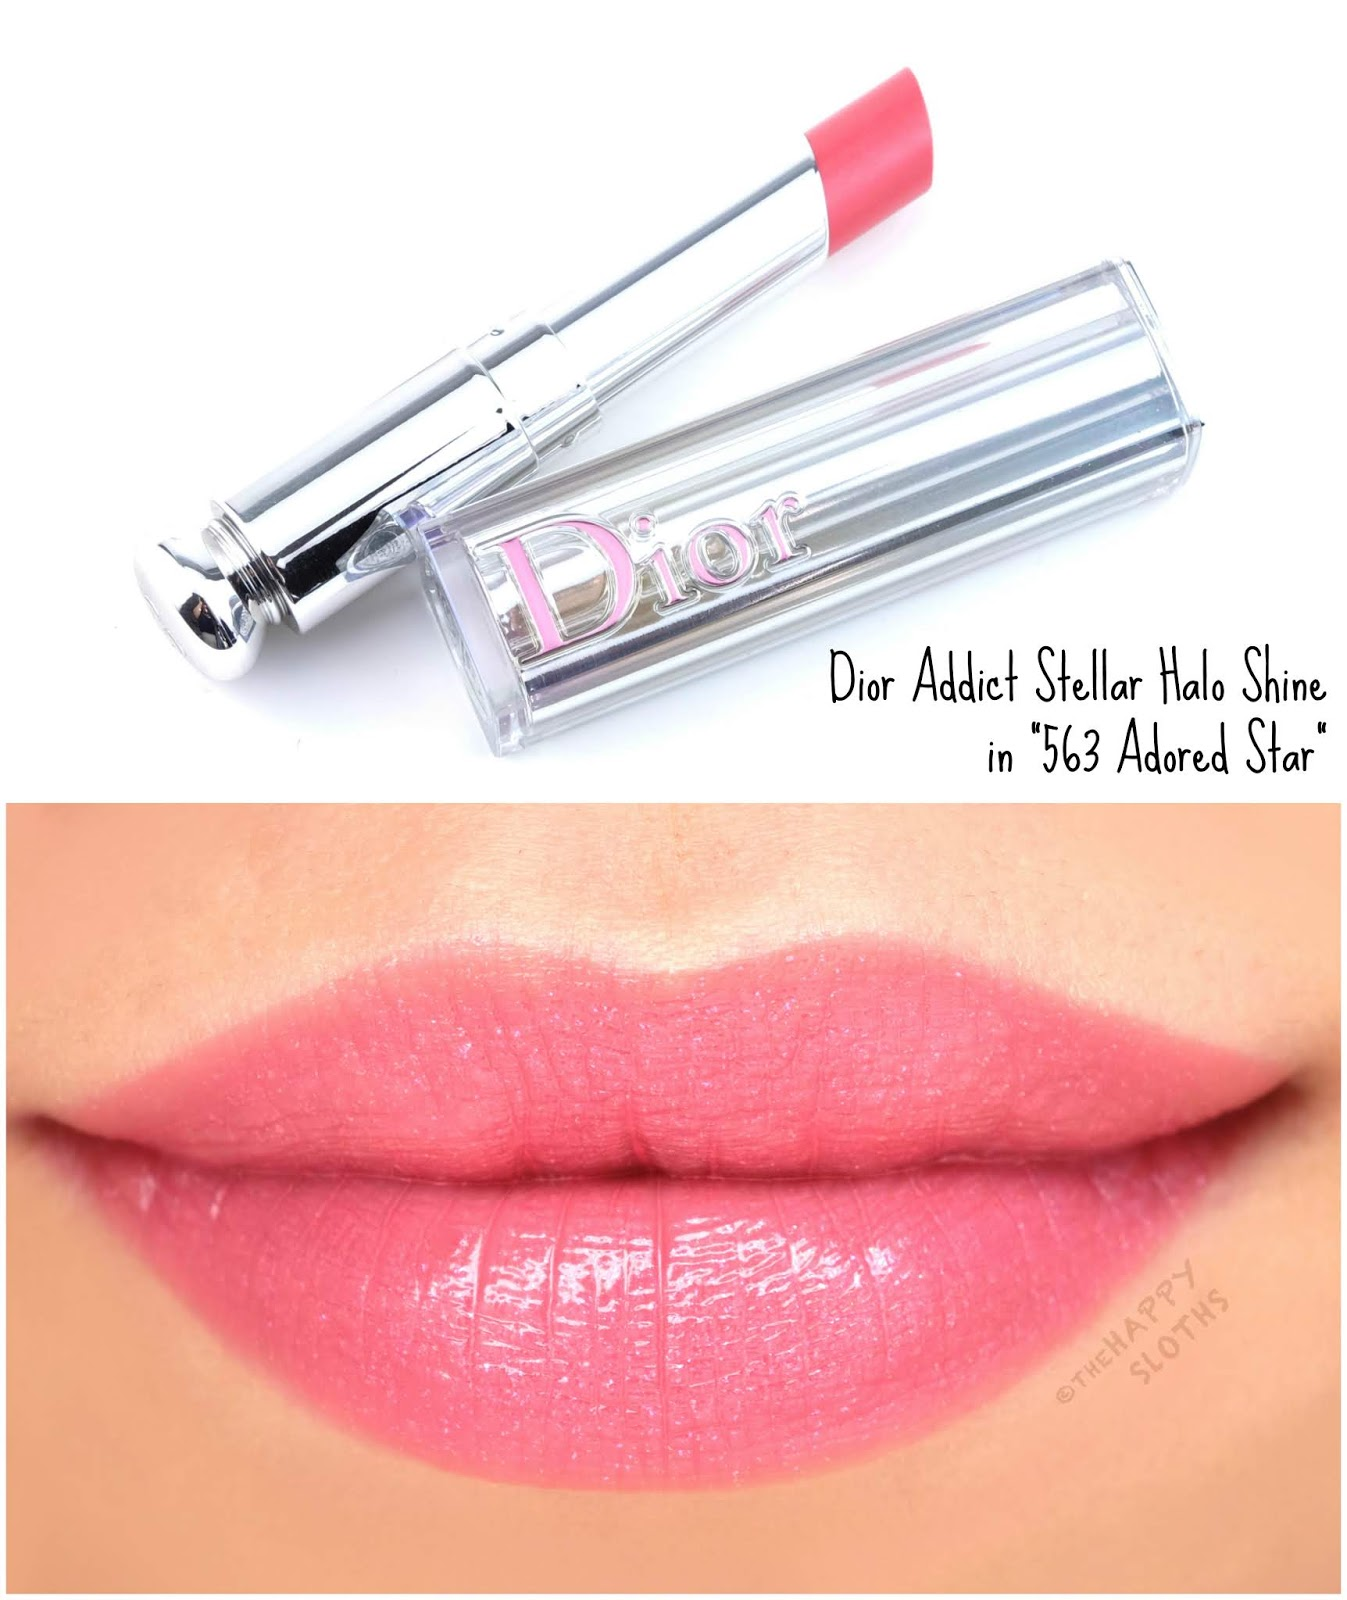 "Dior | Dior Addict Stellar Halo Shine Lipstick in ""563 Adored Star"": Review and Swatches"